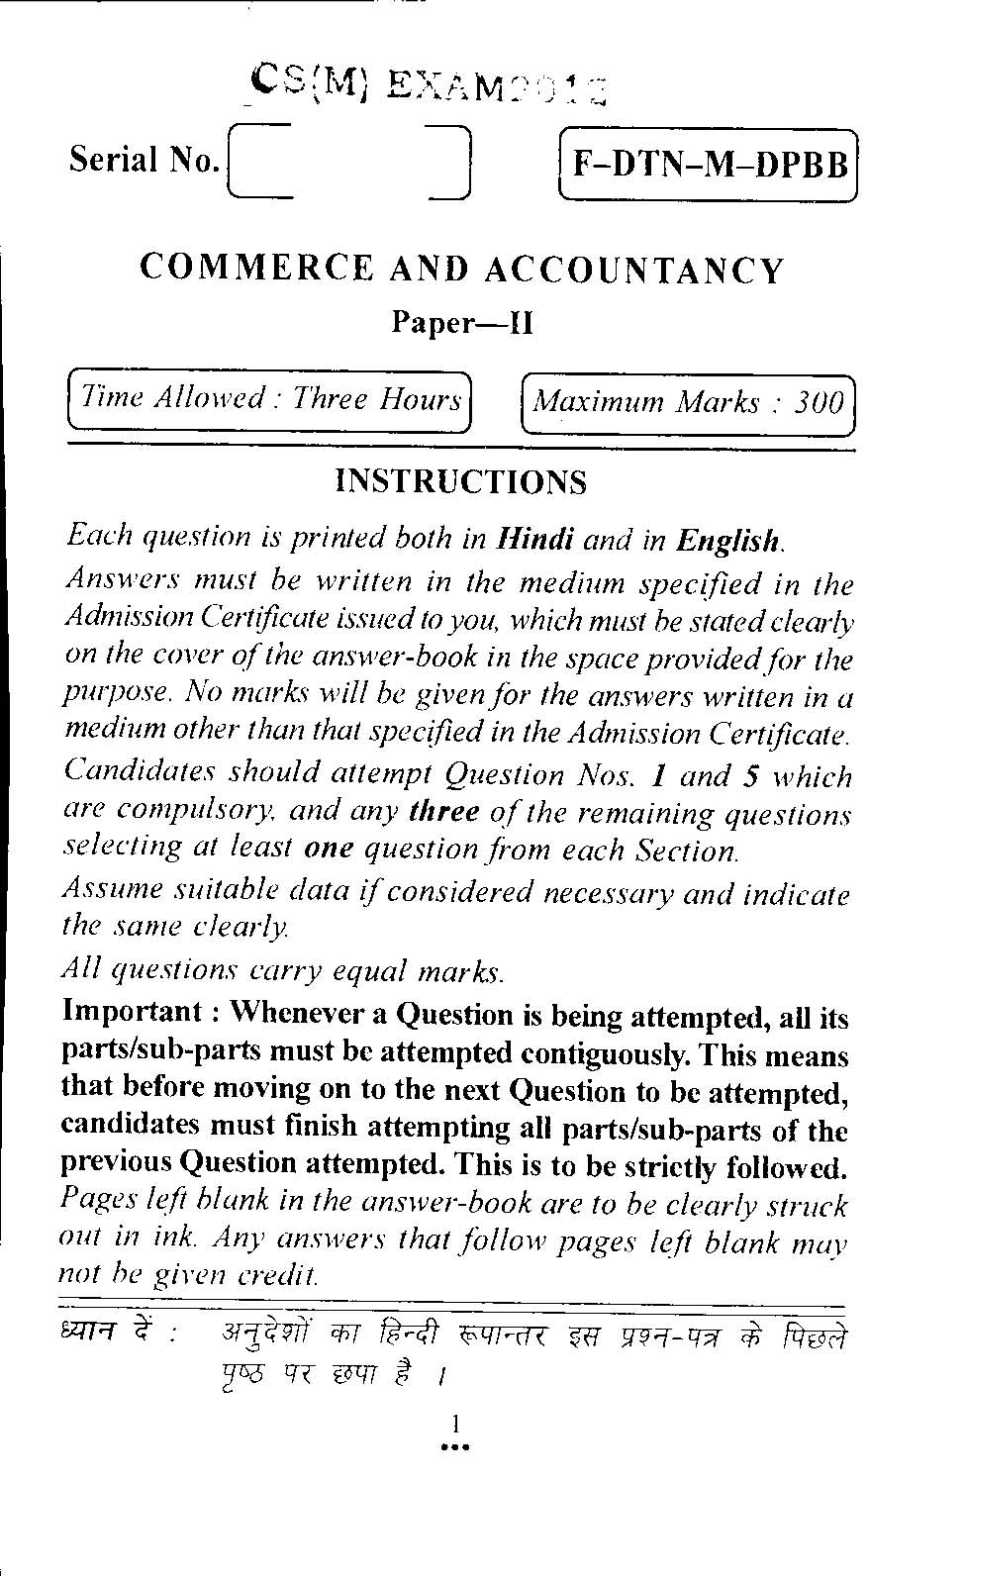 011 Civil Services Examination Commerce And Accountancy Paper Ii Previous Years Que Essay Example Marvelous Racism Racial Issues Topics Hook Full